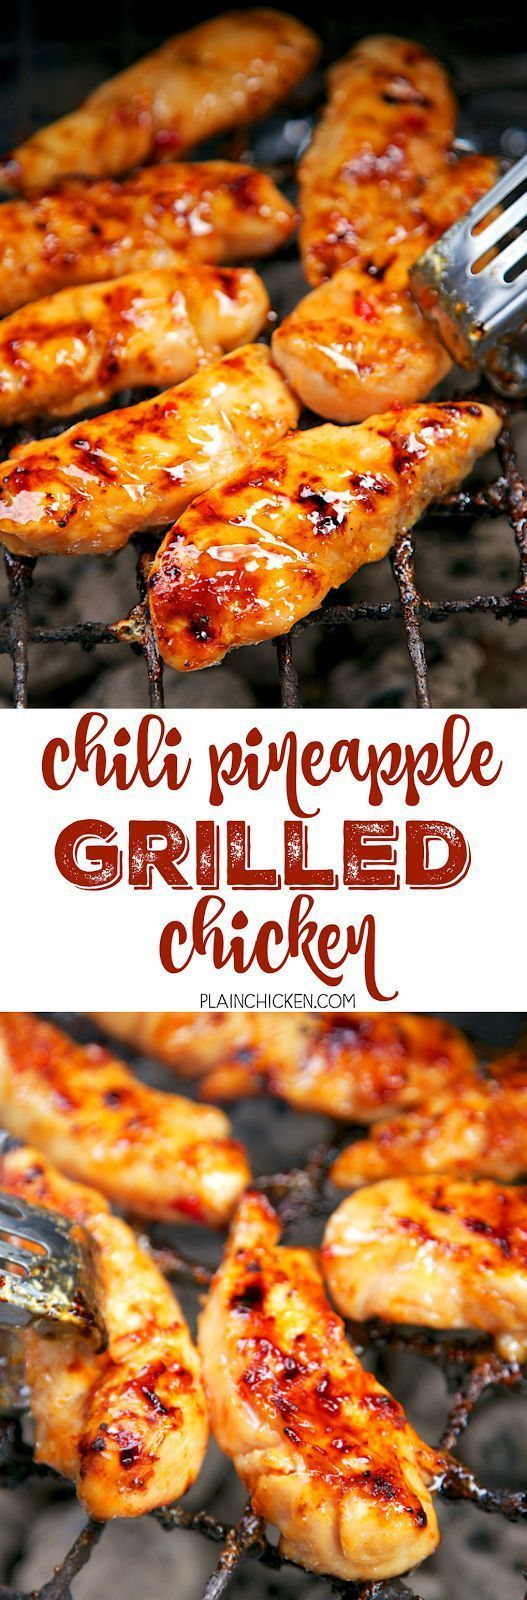 Chili Pineapple Grilled Chicken by Plain Chicken